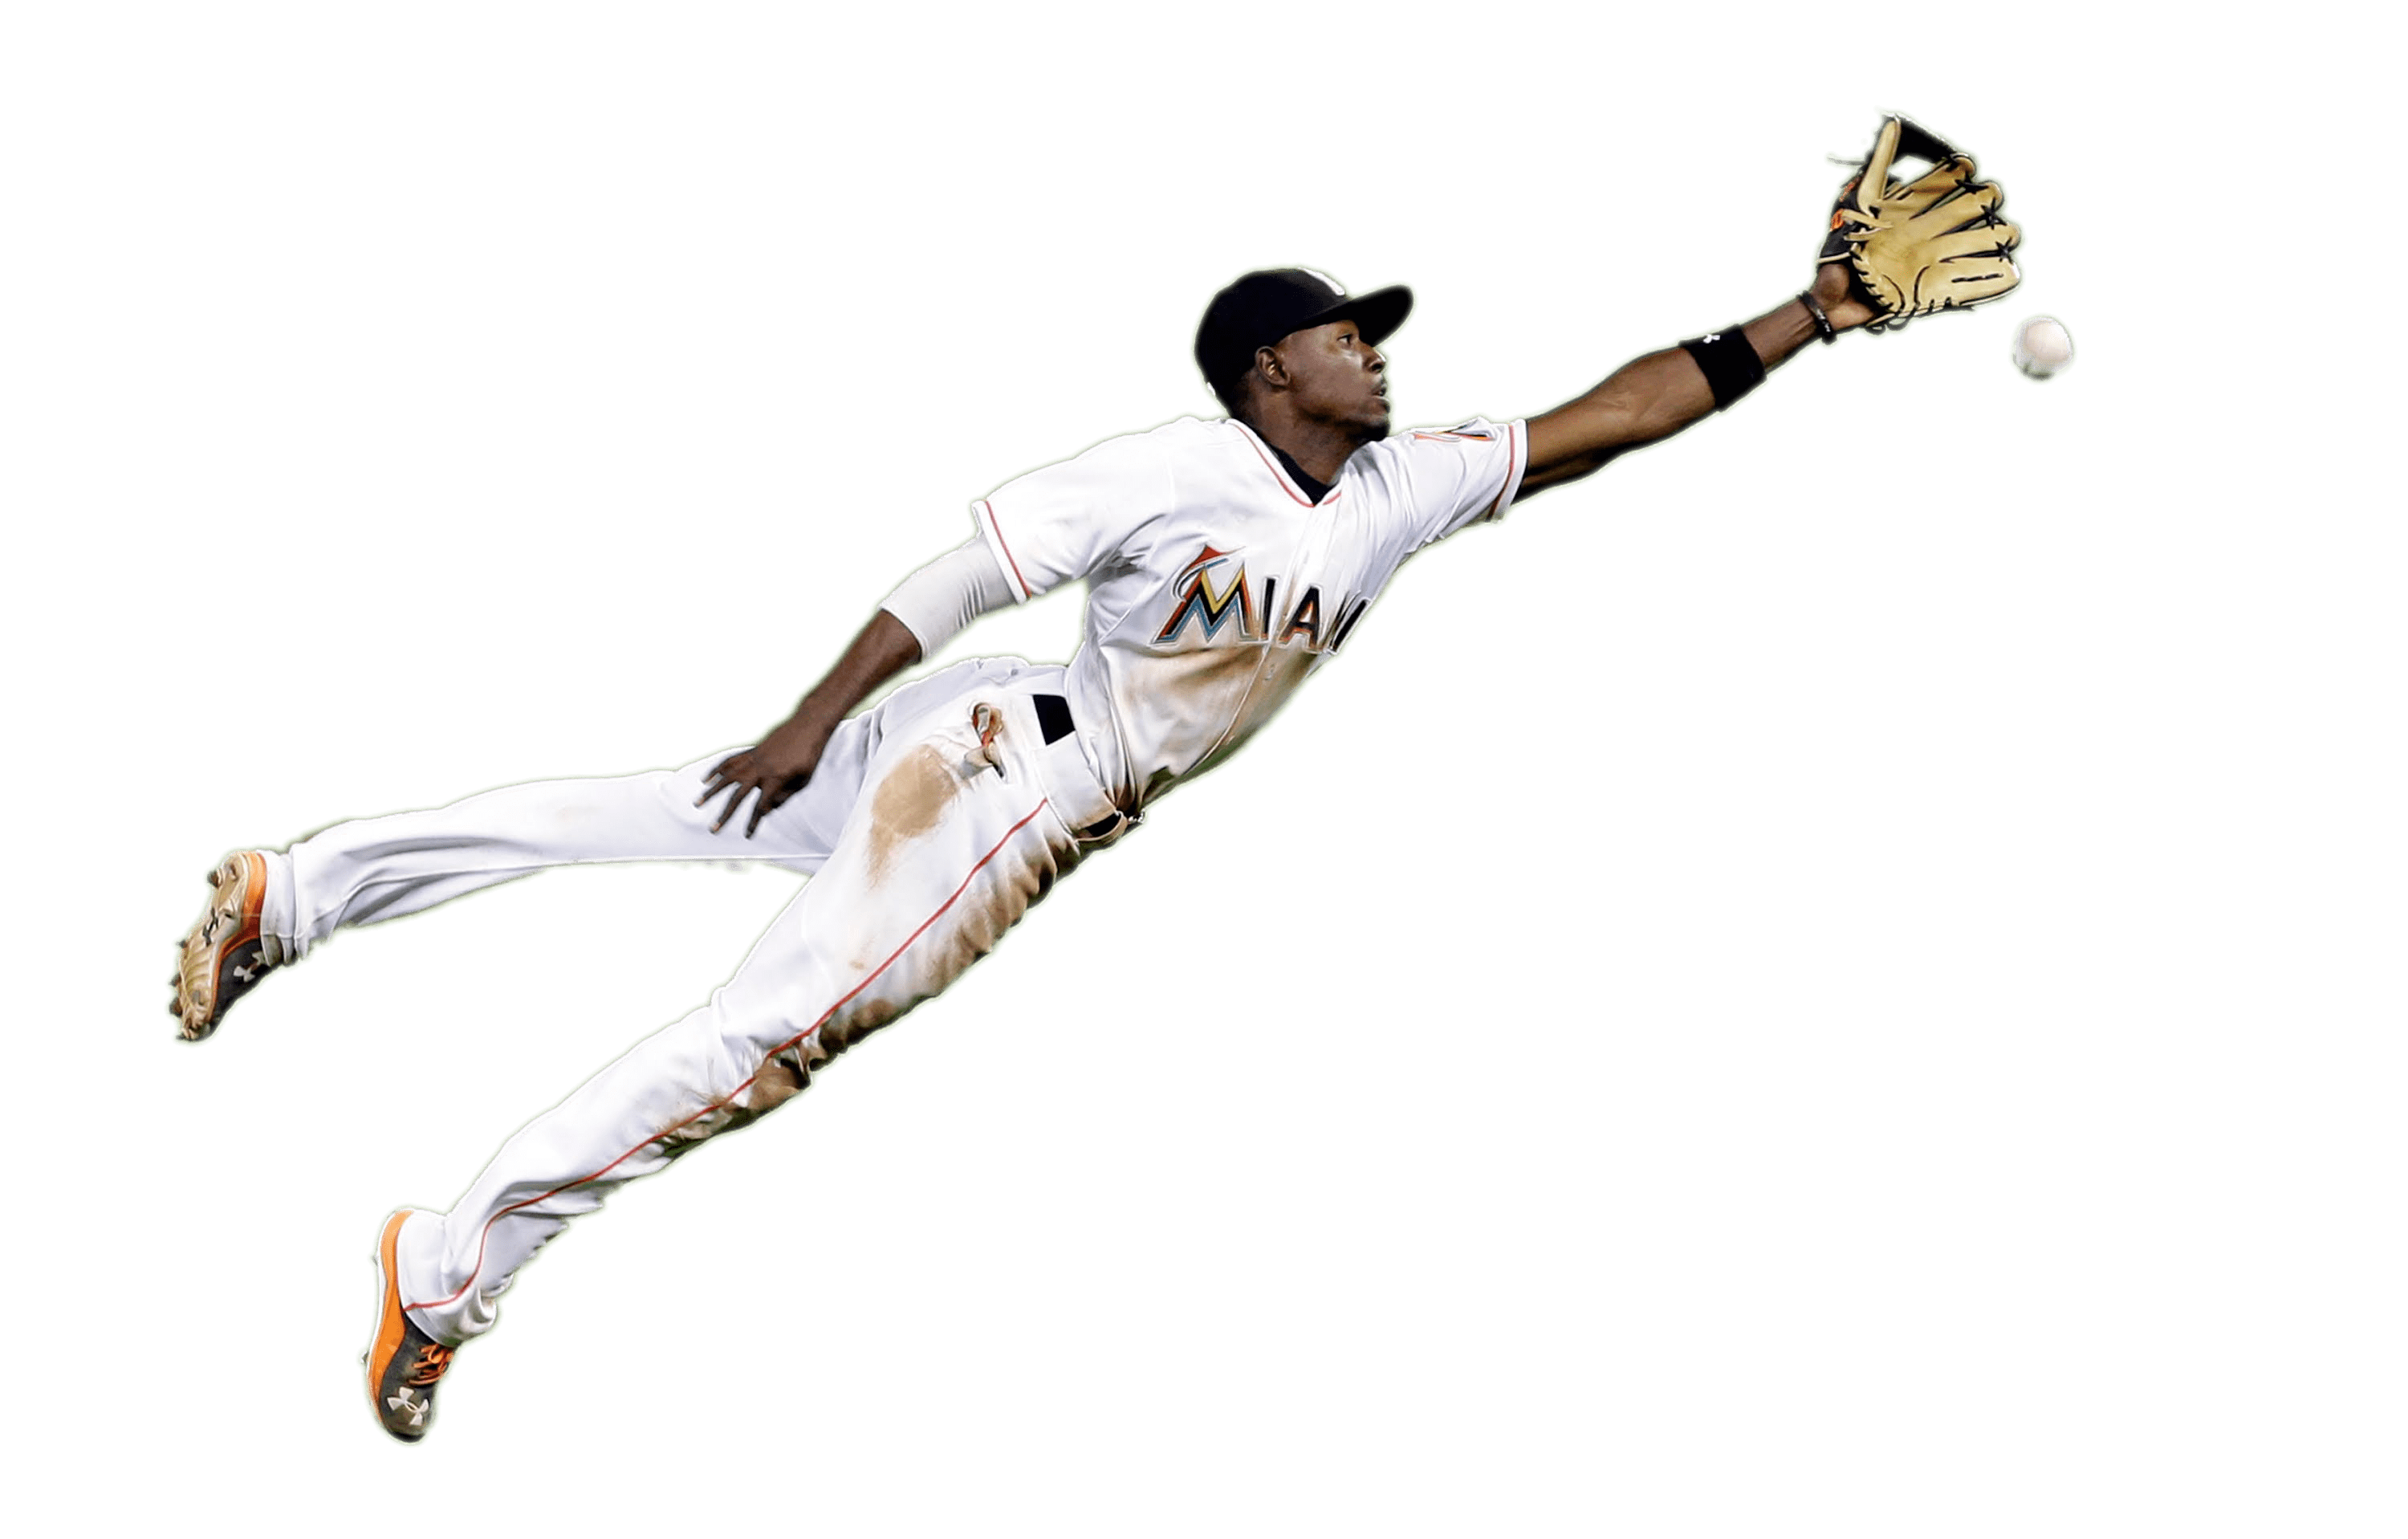 Baseball pitcher png. Player catching transparent stickpng